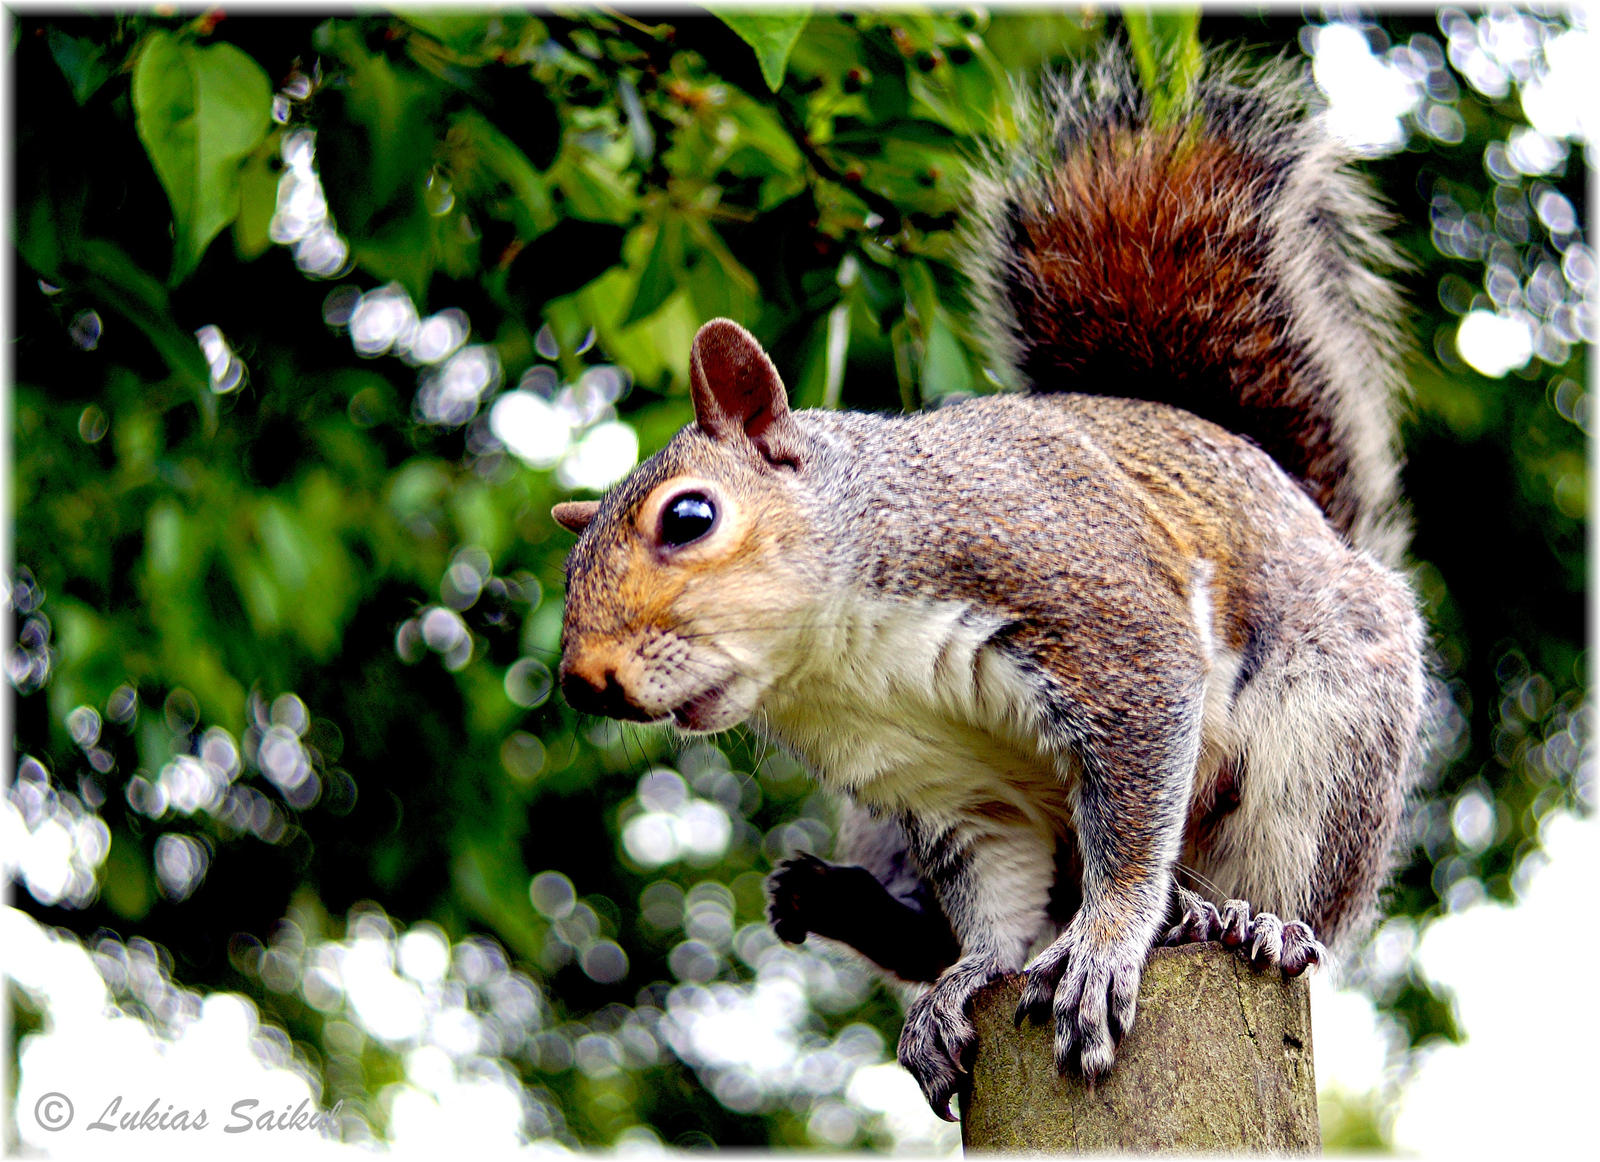 Squirrel III by lukias-saikul